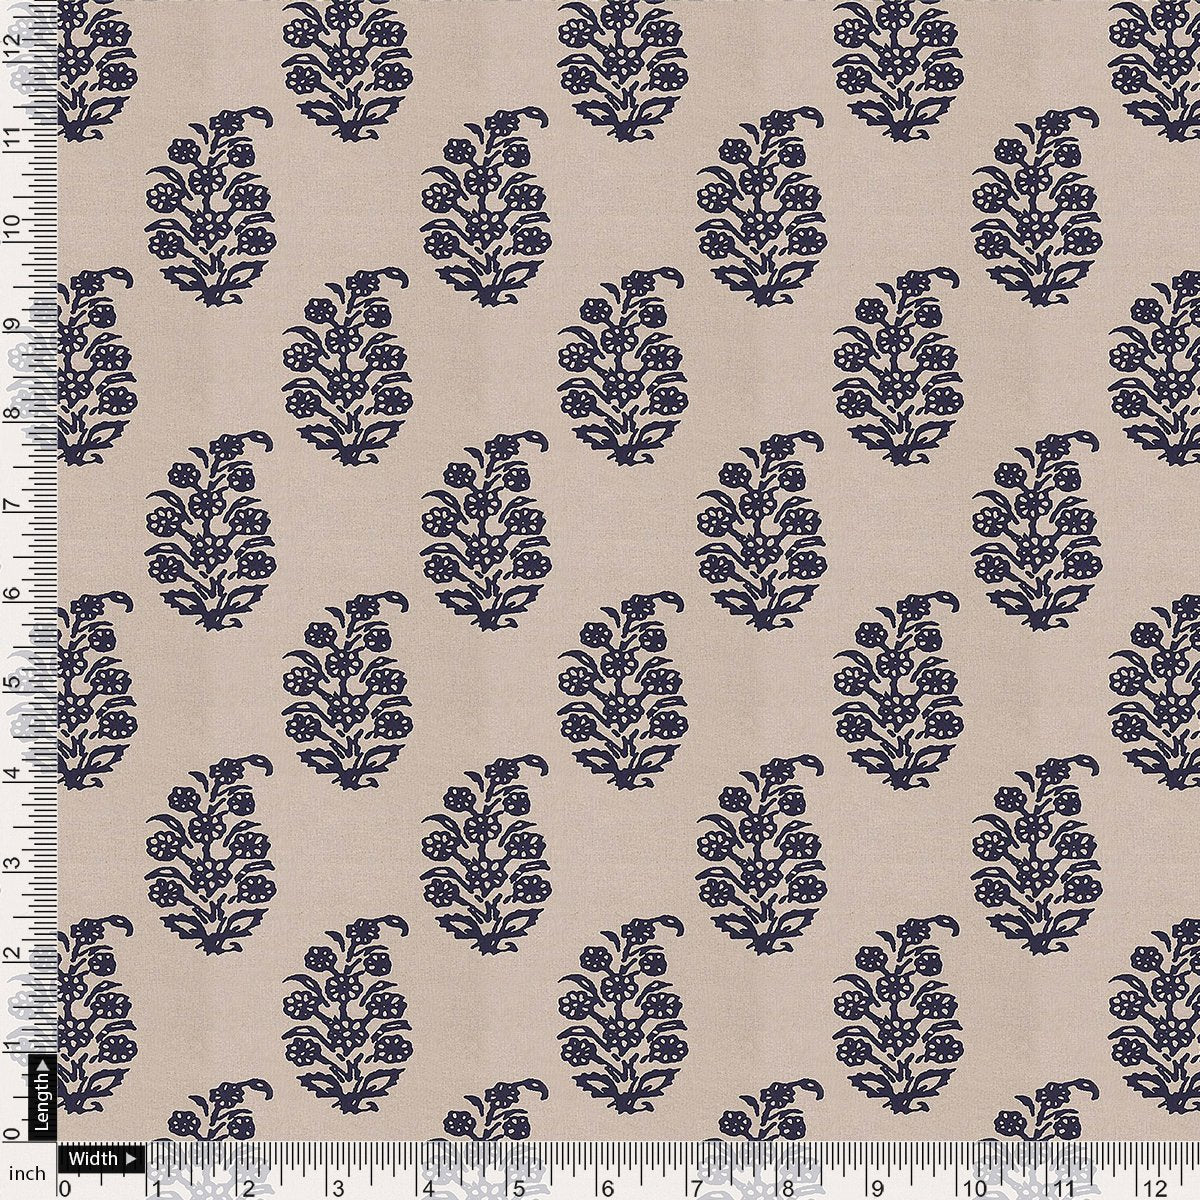 Block Print Motif Digital Printed Fabric - Pure Chiffon